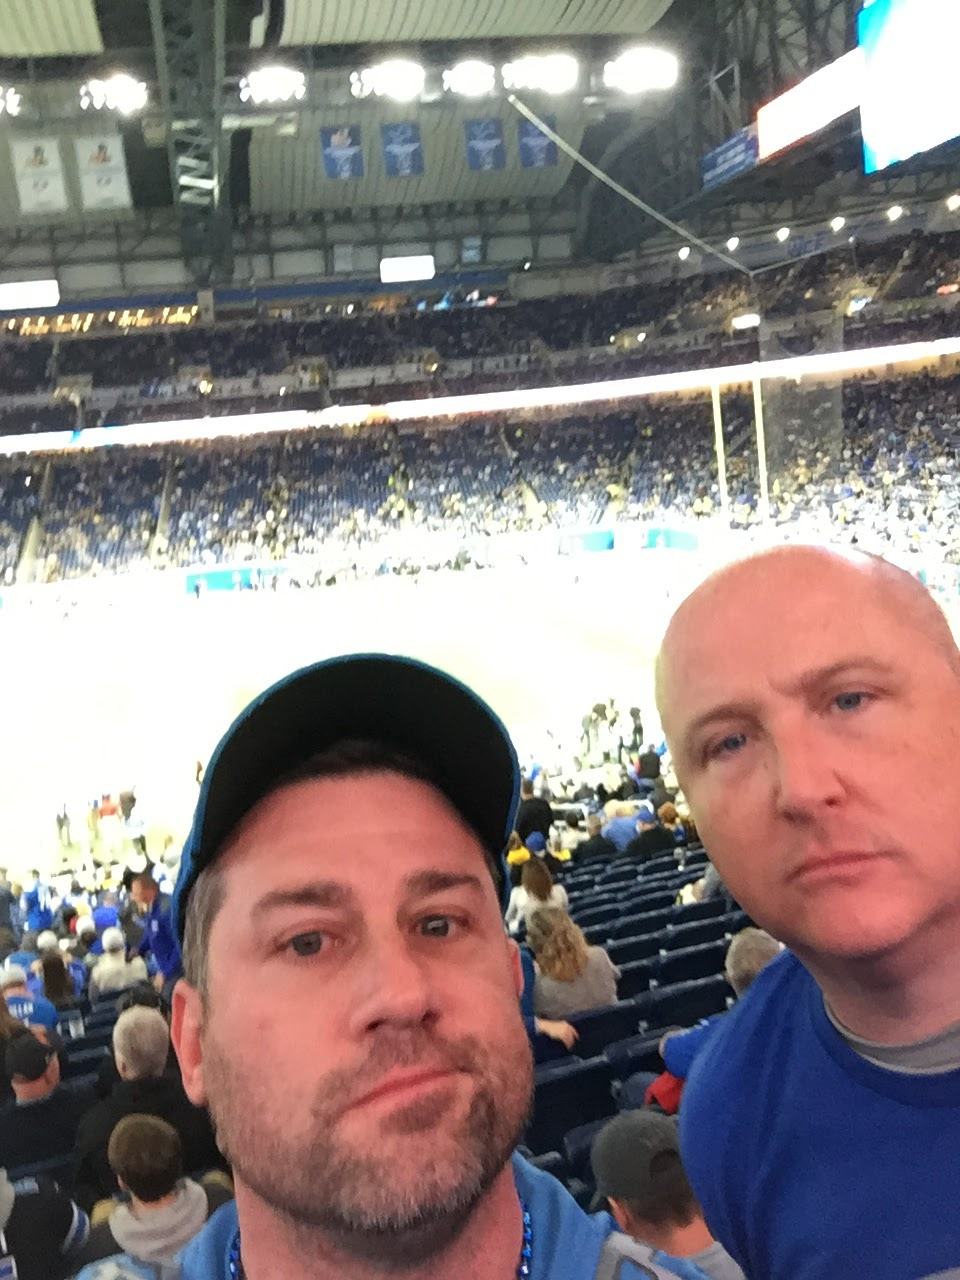 Detroit Lions 345 15: Scenes from the Roar Zone vs. Steelers. Lions lose third straight home game